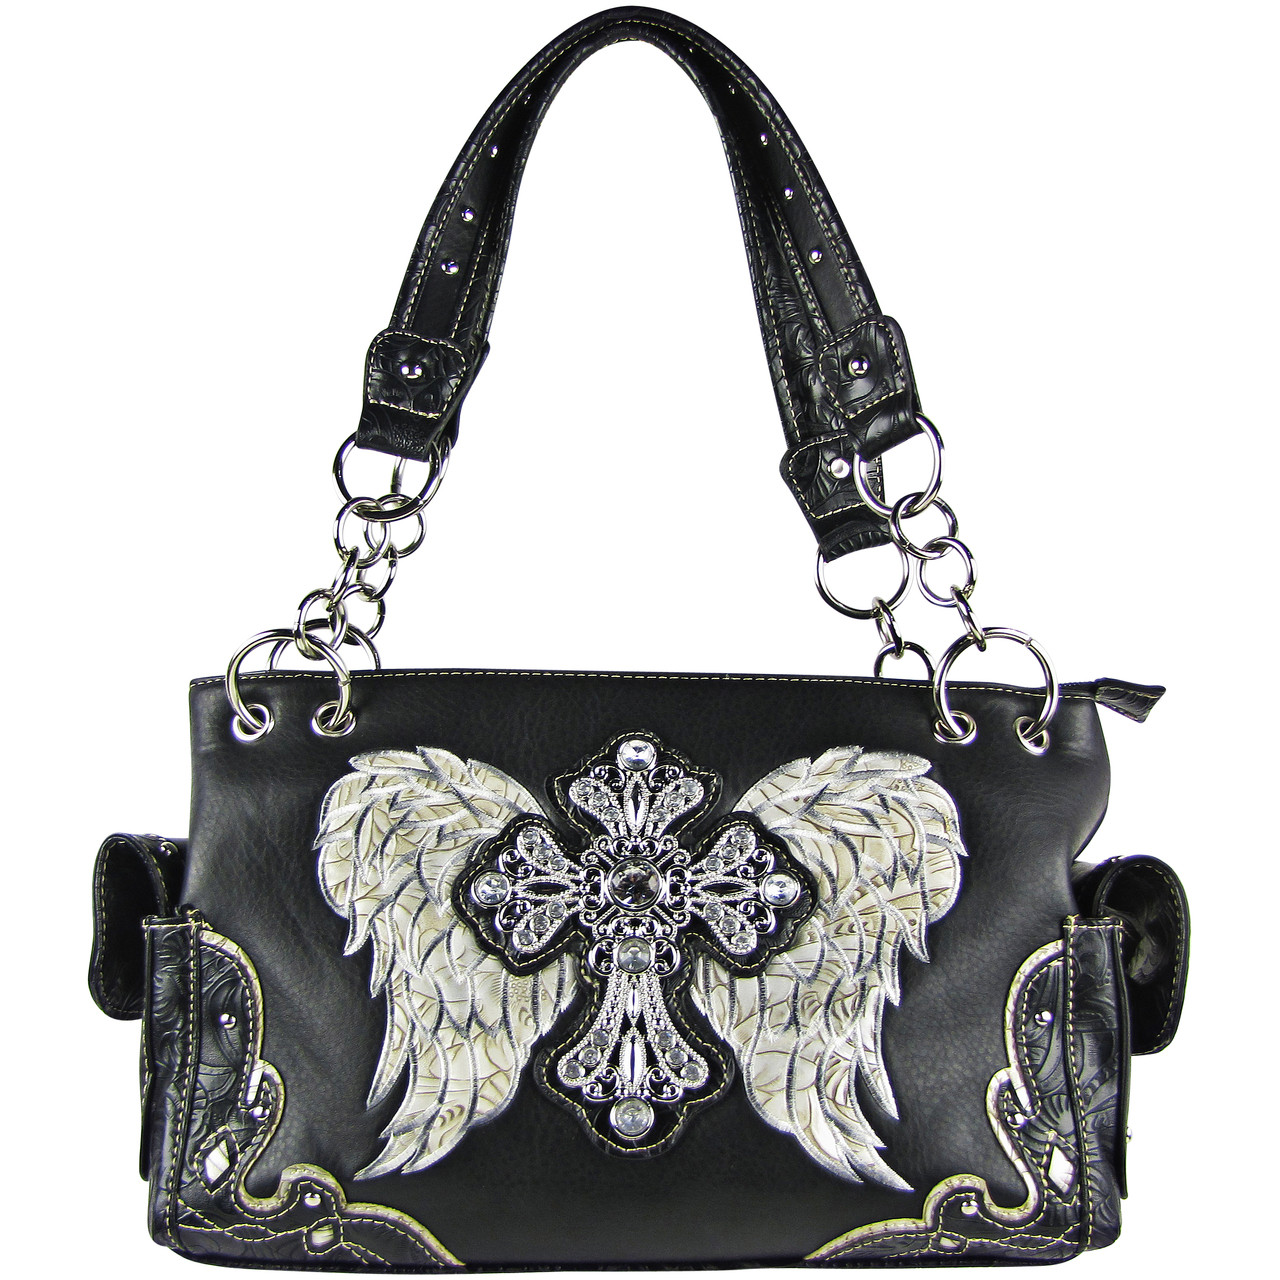 SILVER RHINESTONE CROSS WITH WINGS LOOK SHOULDER HANDBAG HB1-61LCRSLLV